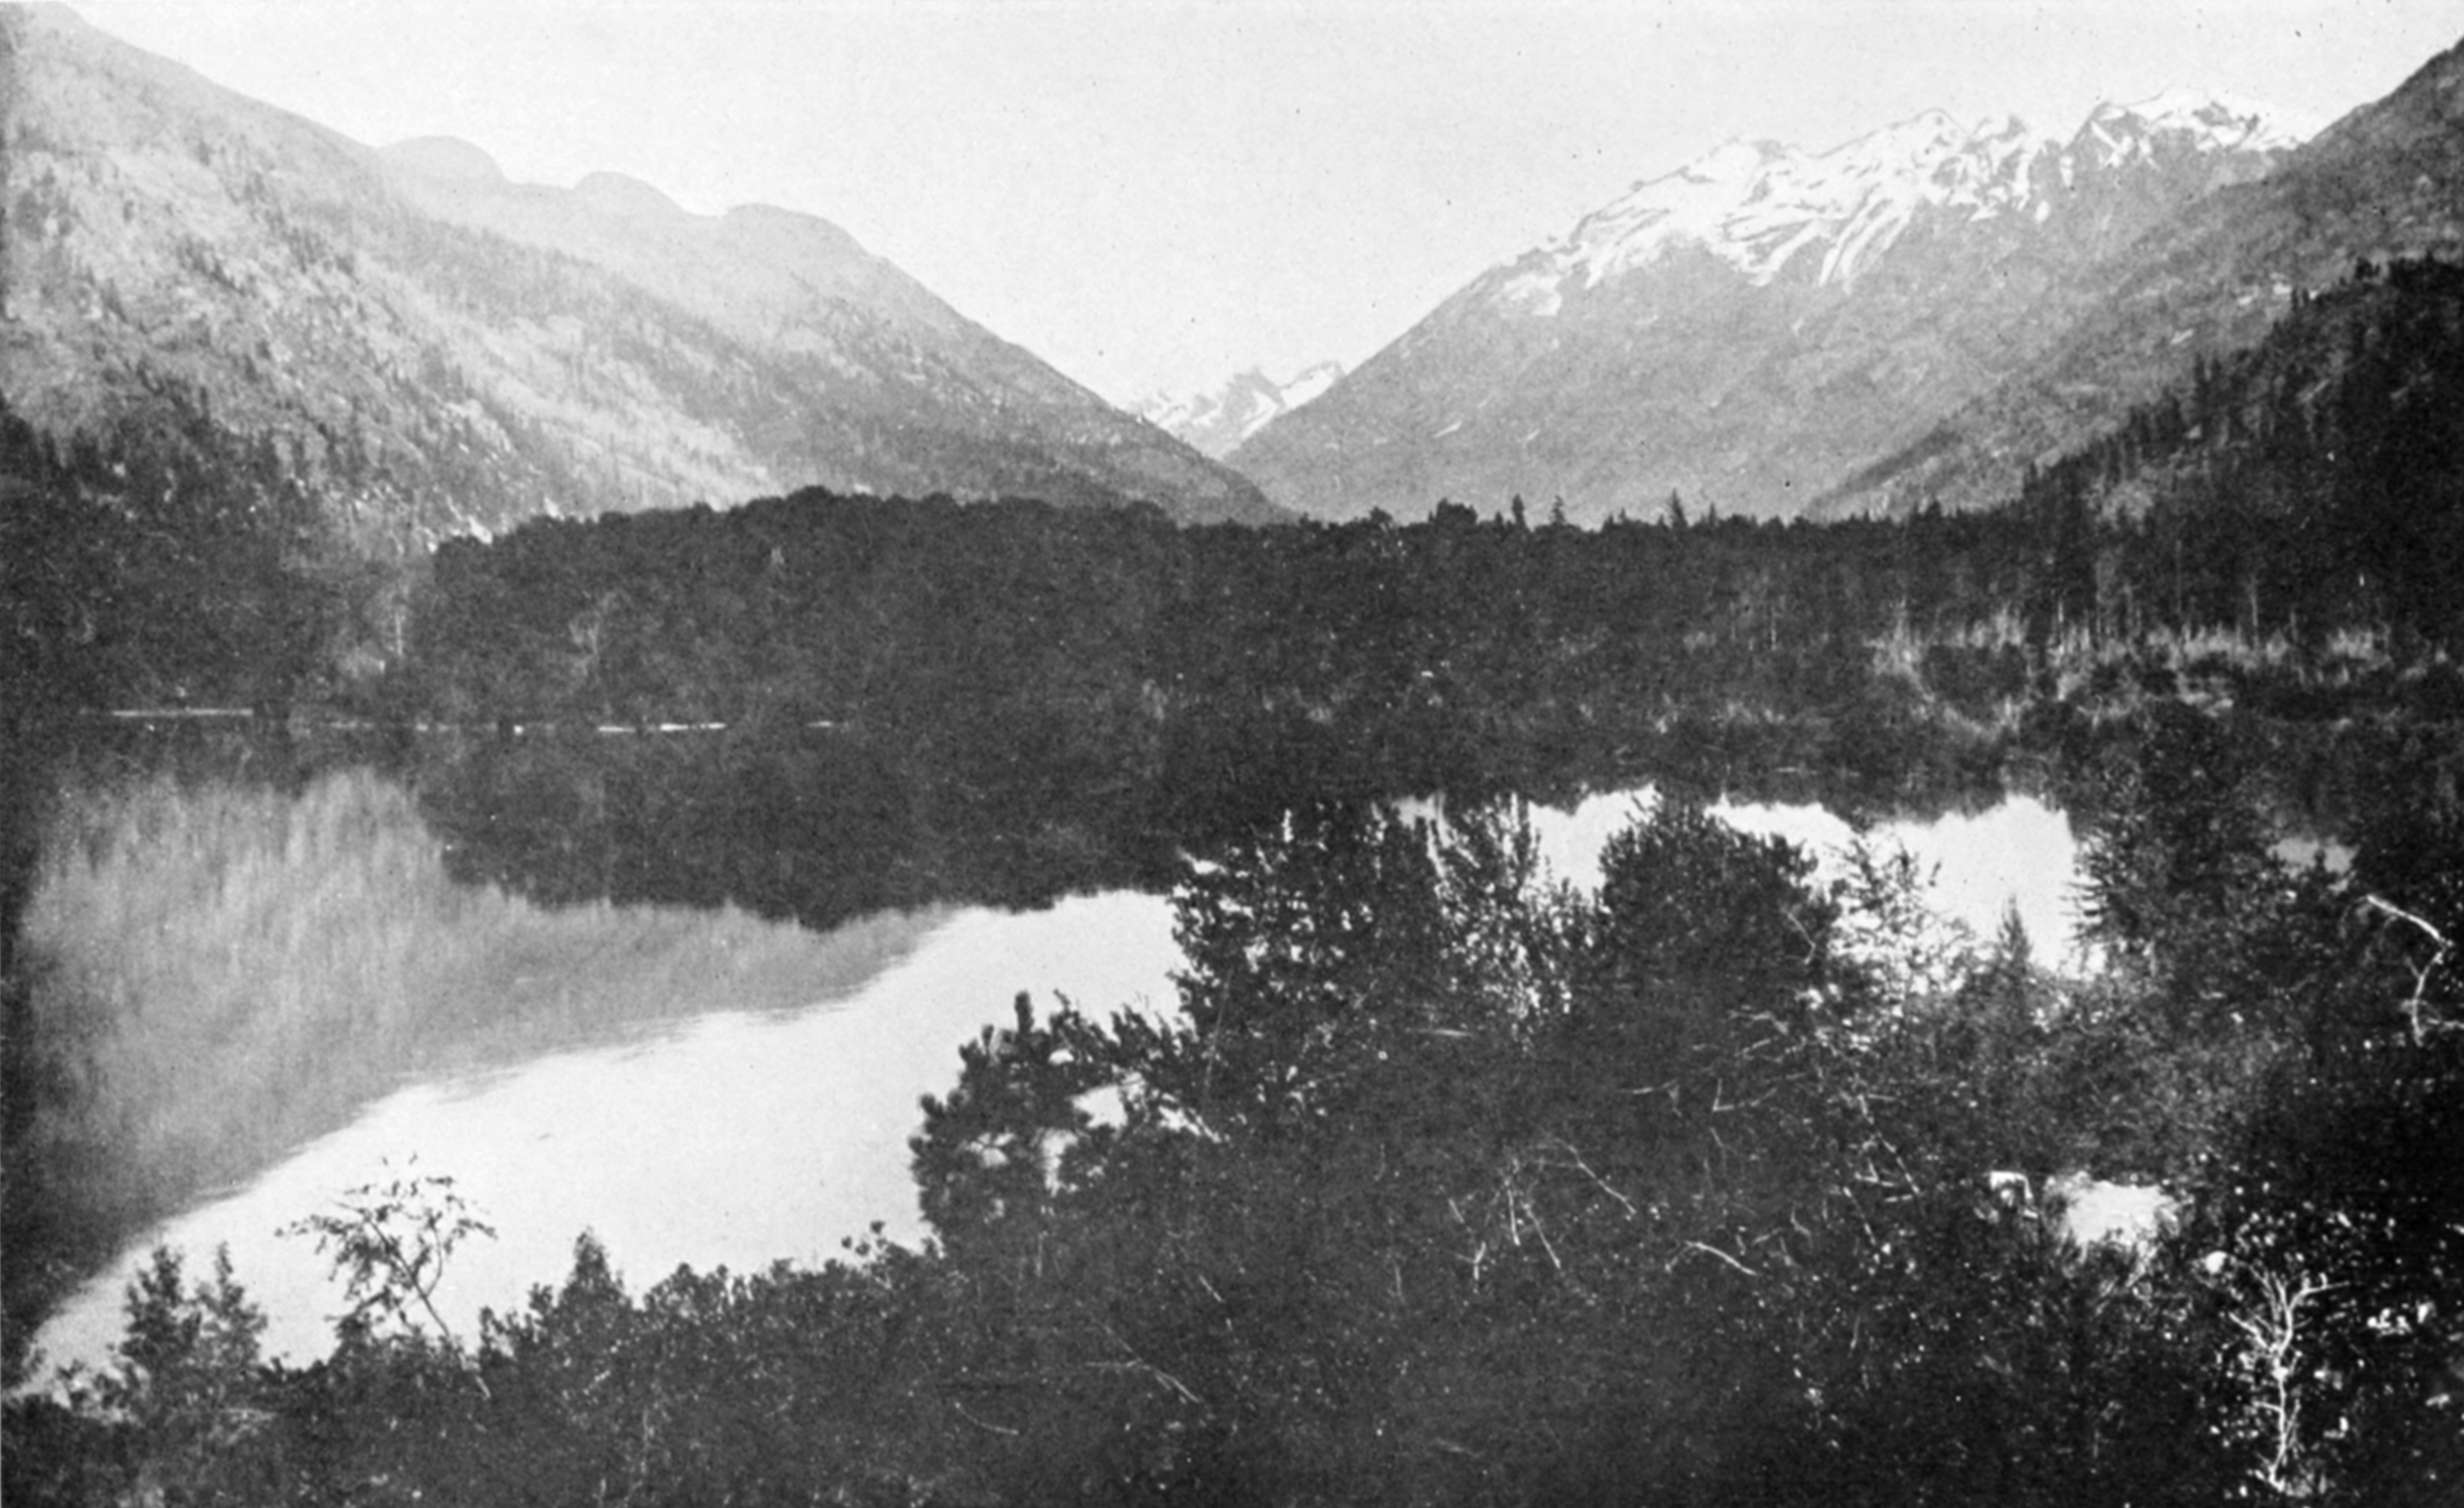 The Columbia River Its History, Its Myths, Its Scenery, Its Commerce p 397.png